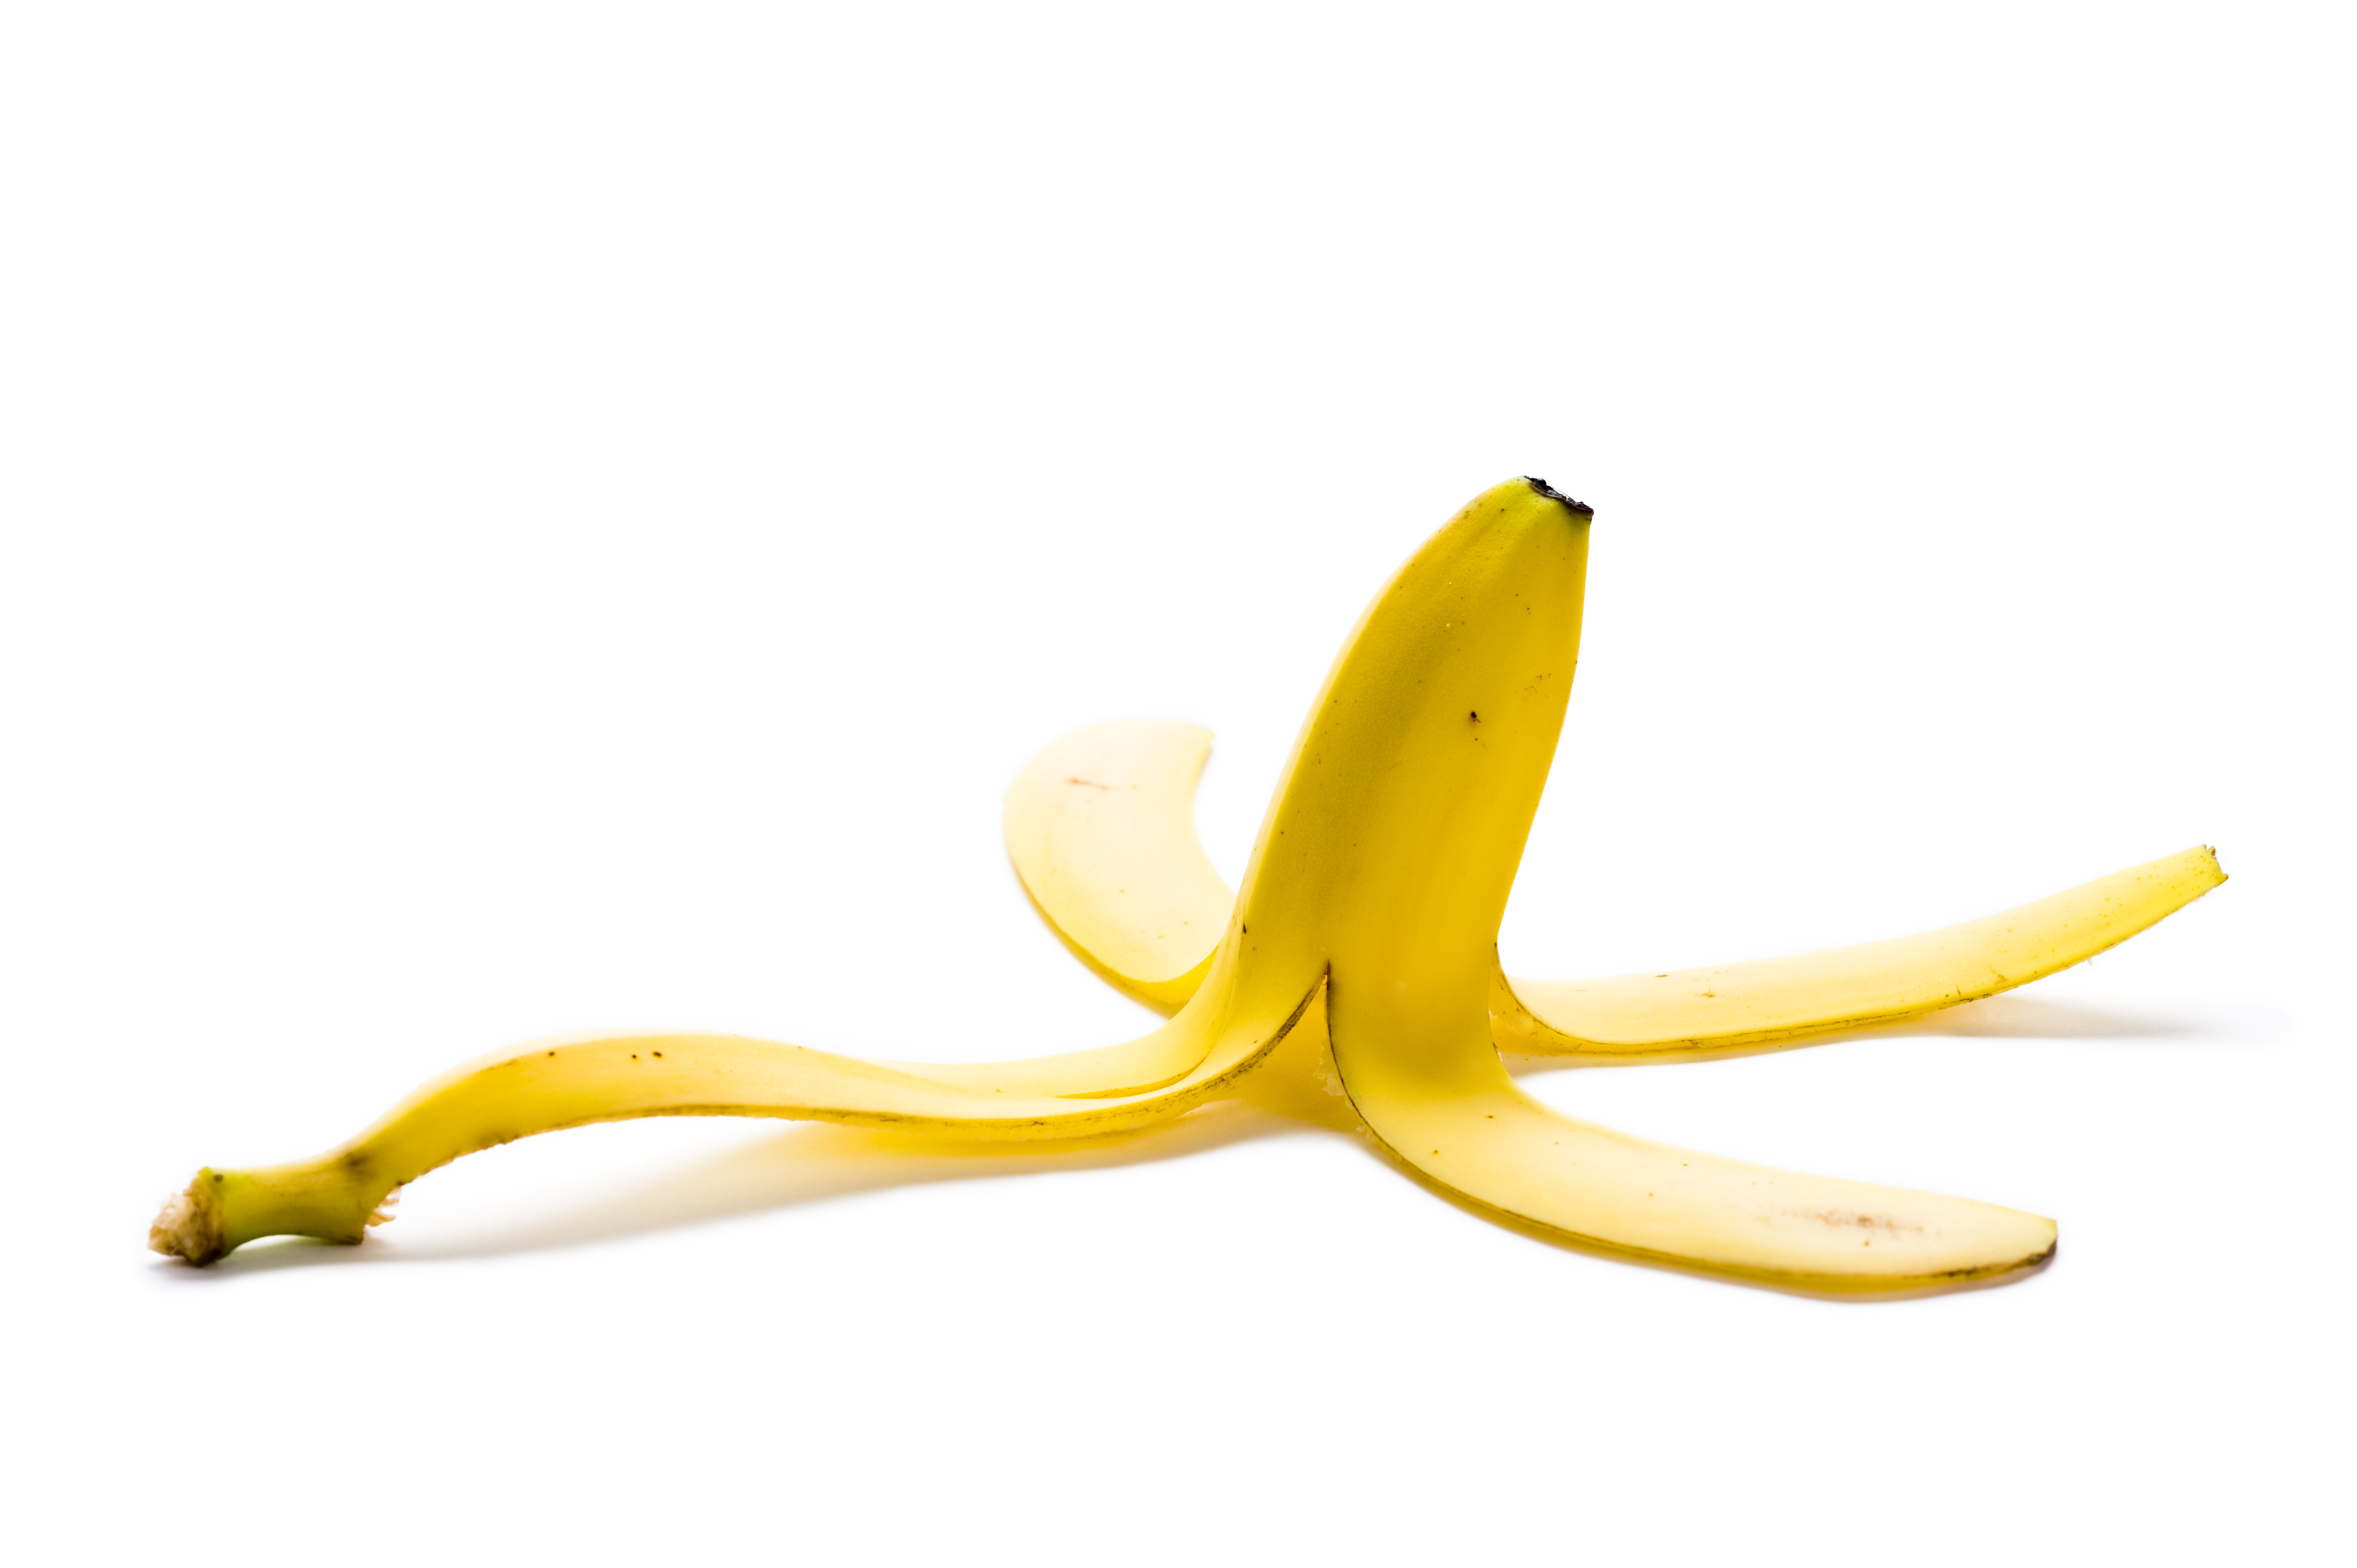 banana peel as an alternative for toothpaste One beauty blogger has uploaded a video claiming you can use banana peel to cure your acne, in a natural alternative to expensive skincare products.